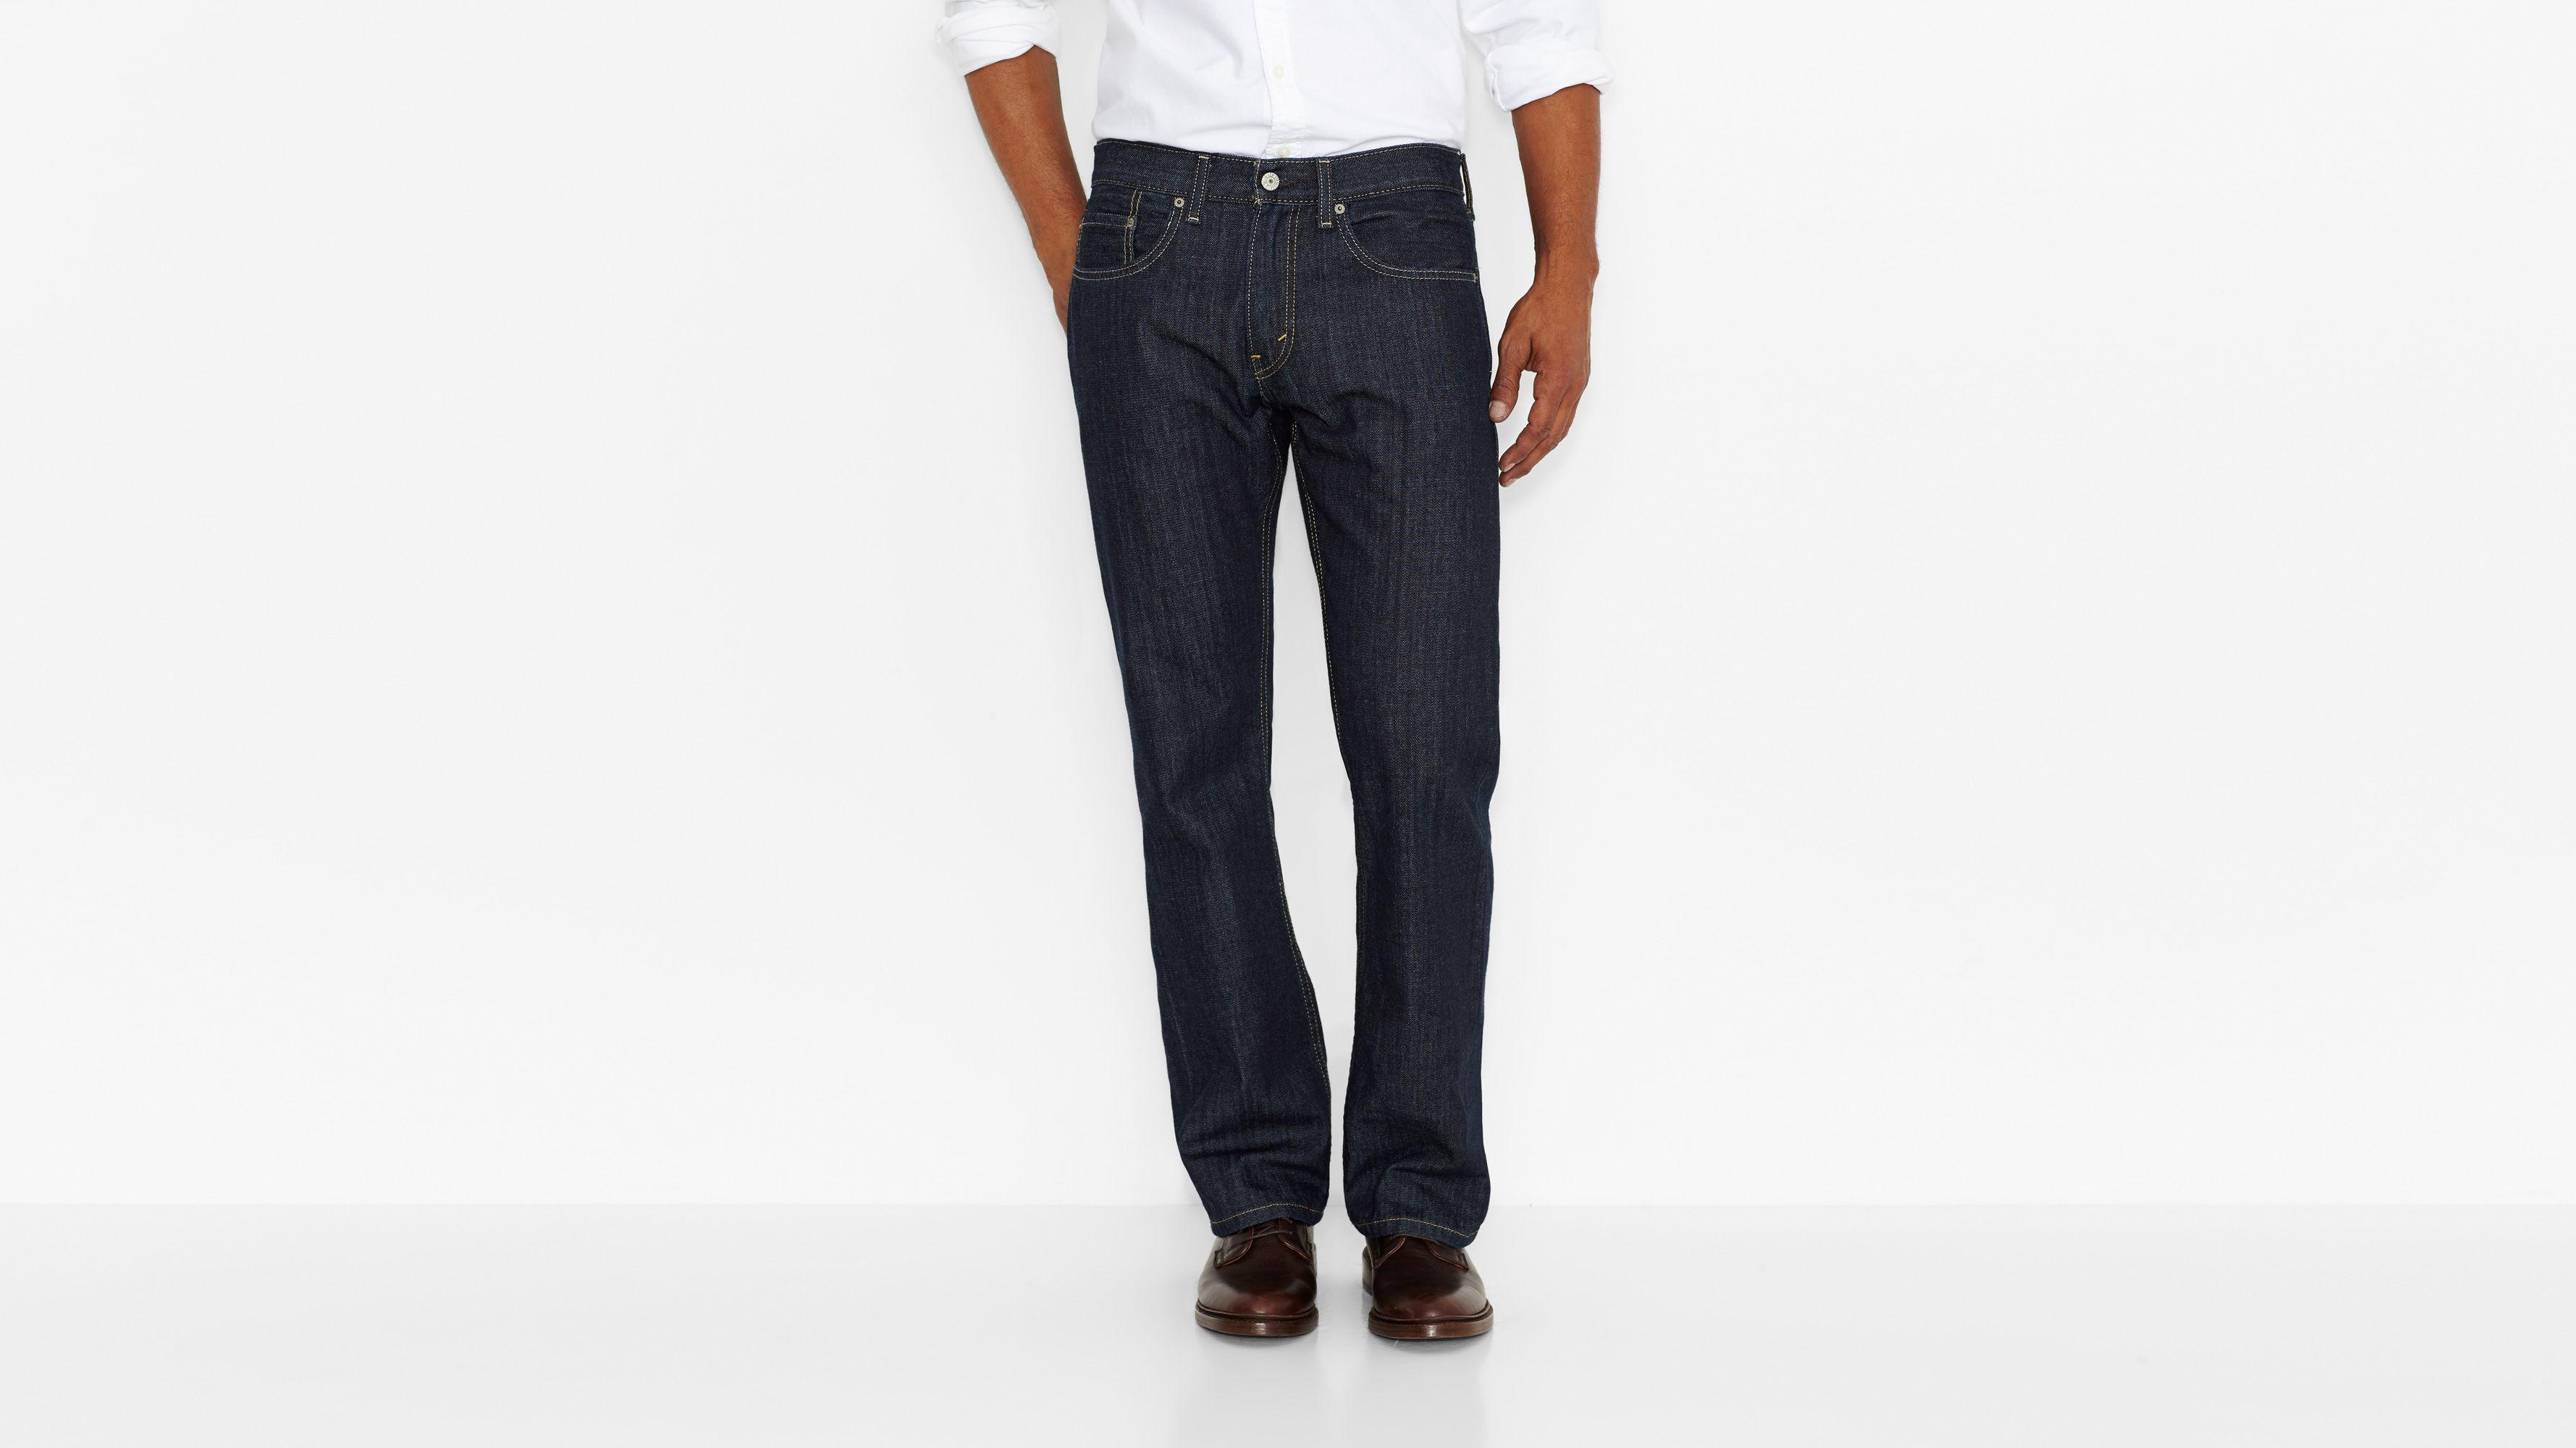 559™ Relaxed Straight Jeans - Tumbled Rigid